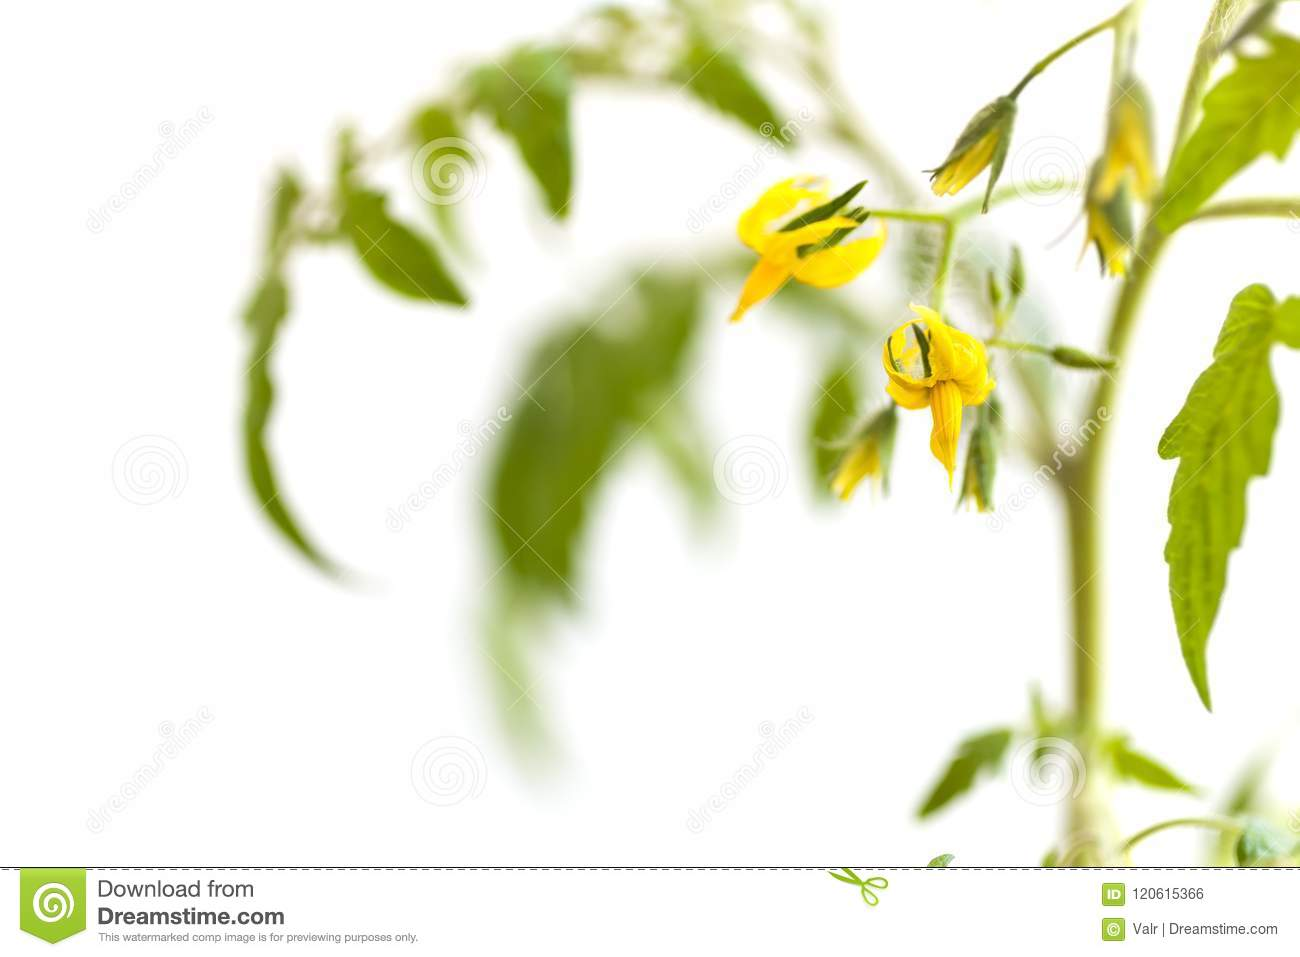 Twig Of Tomato Plant With Yellow Flowers Stock Photo Image Of Grow